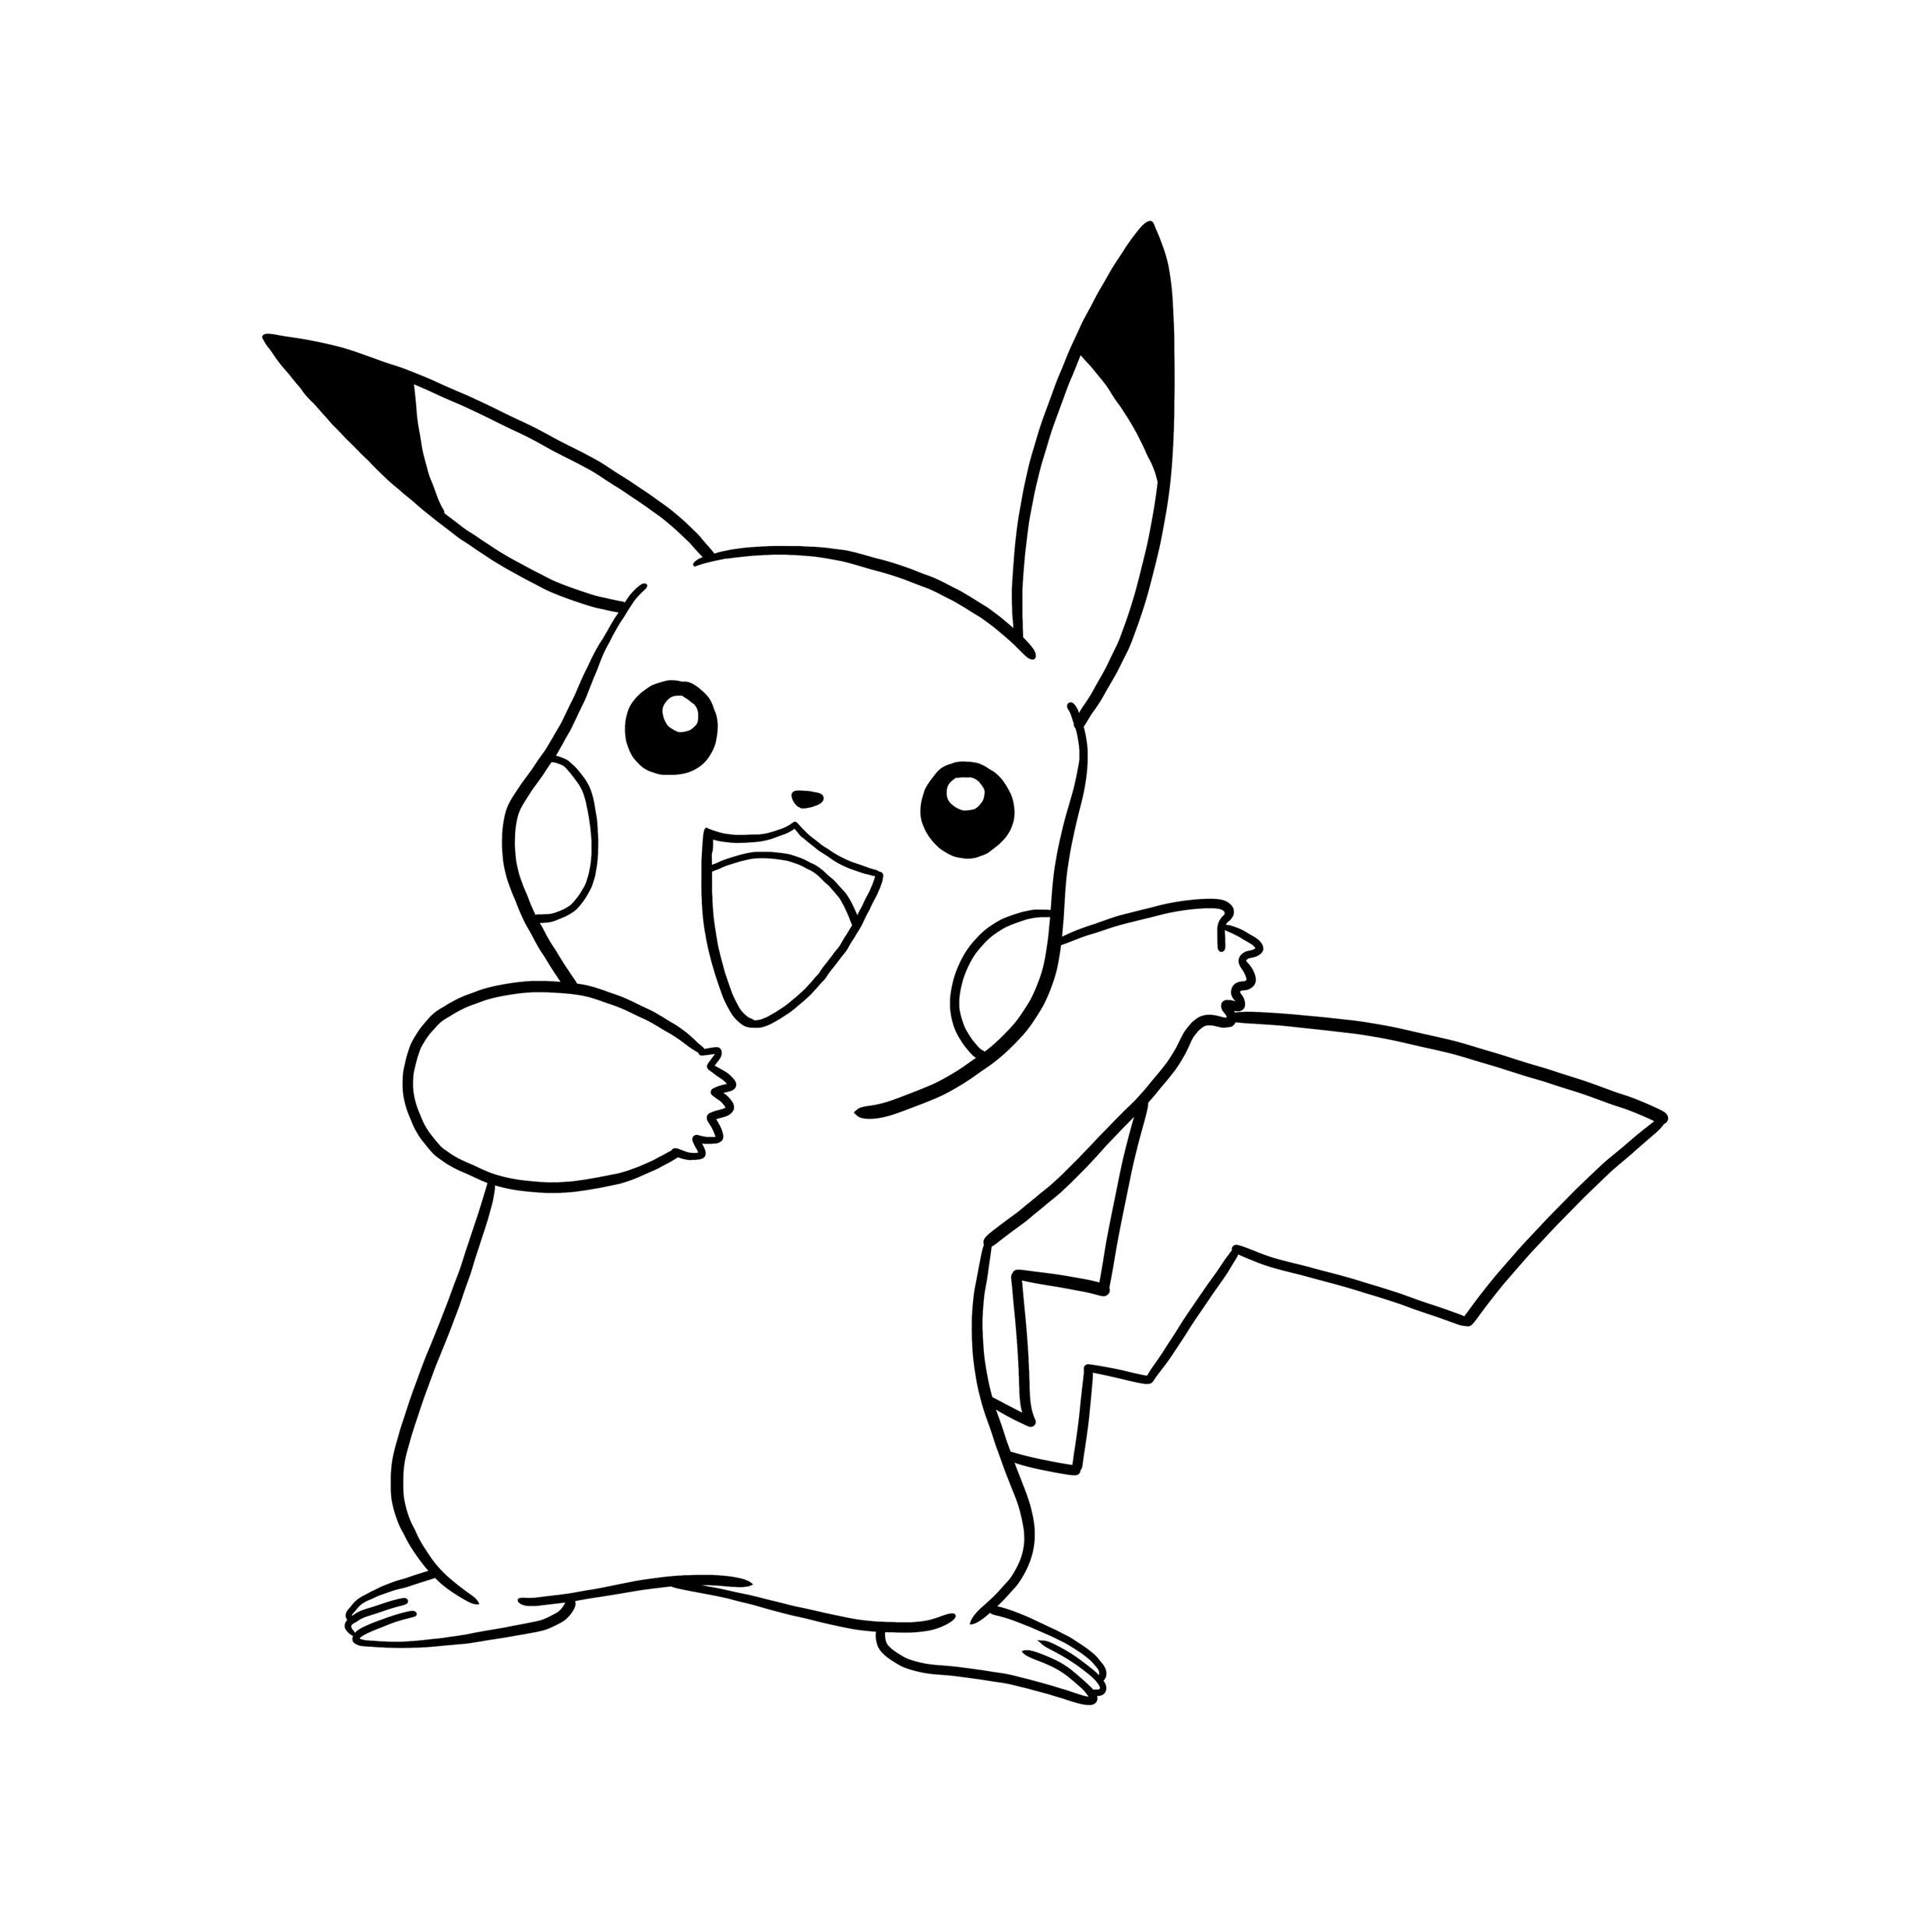 Pikachu Drawings New Easy Pikachu Drawing How To Draw Pikachu